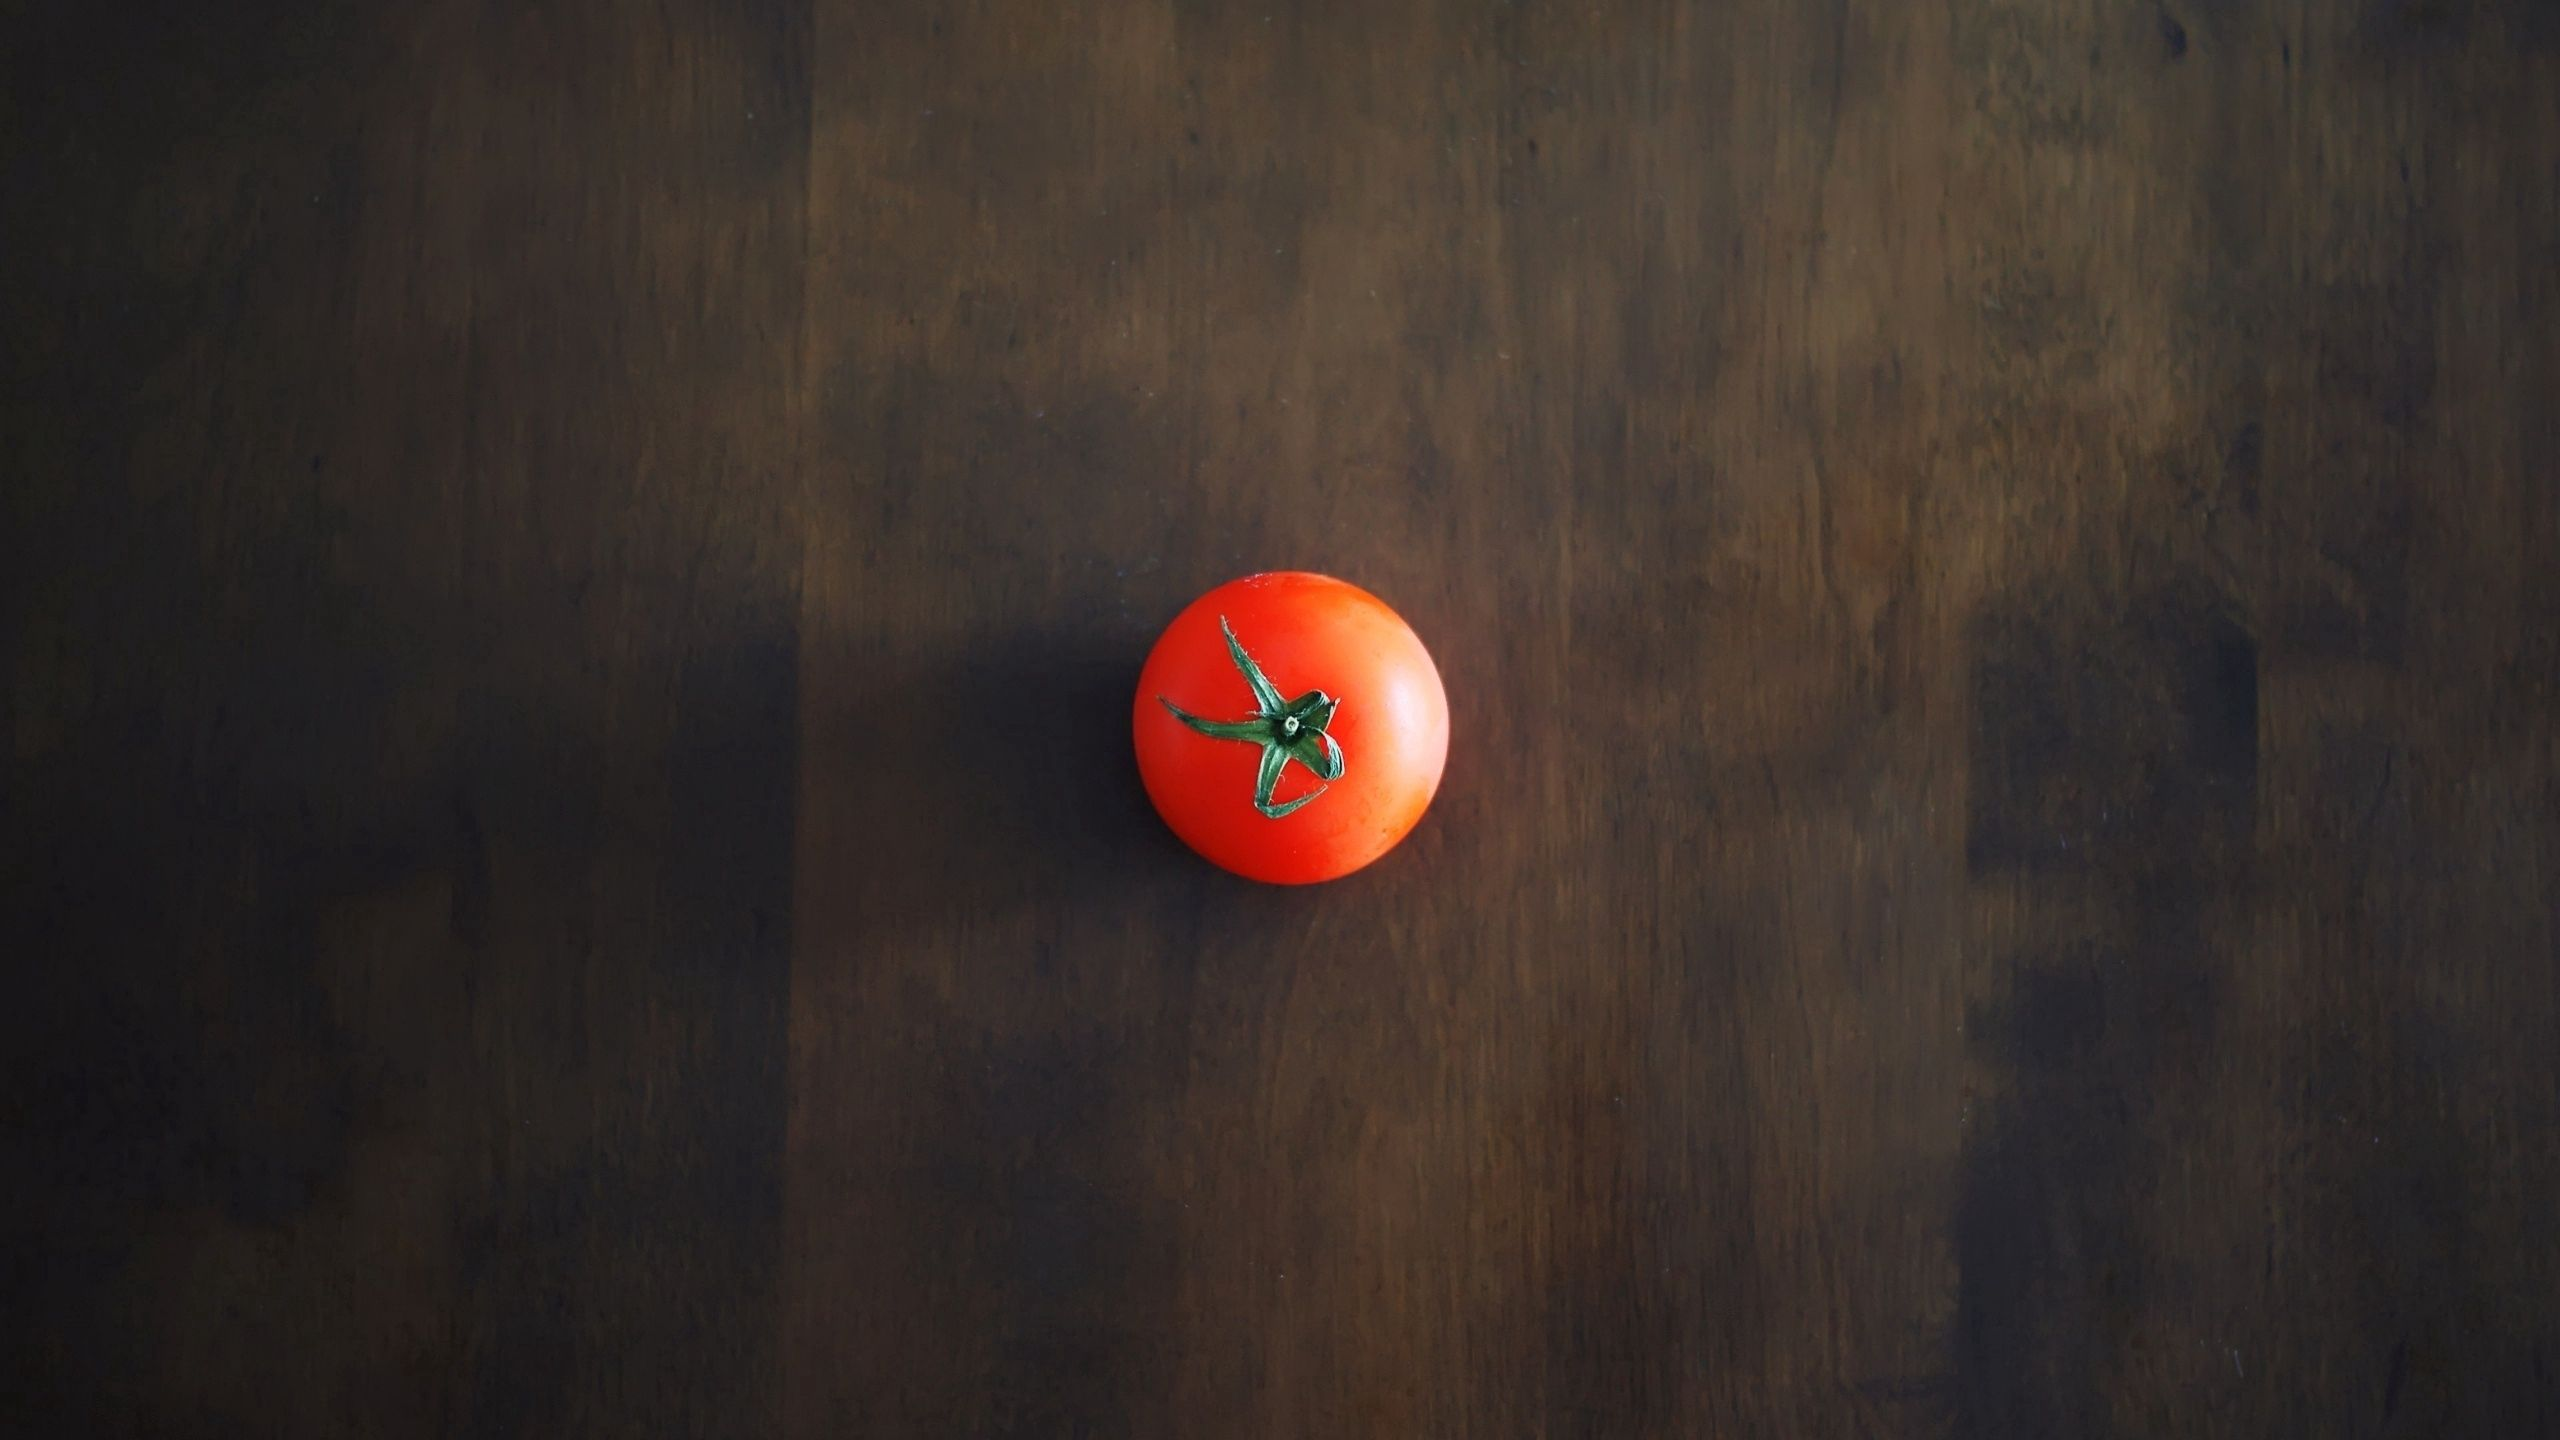 2560x1440 Wallpaper minimalism, tomato, red, table, wall, shadow, background